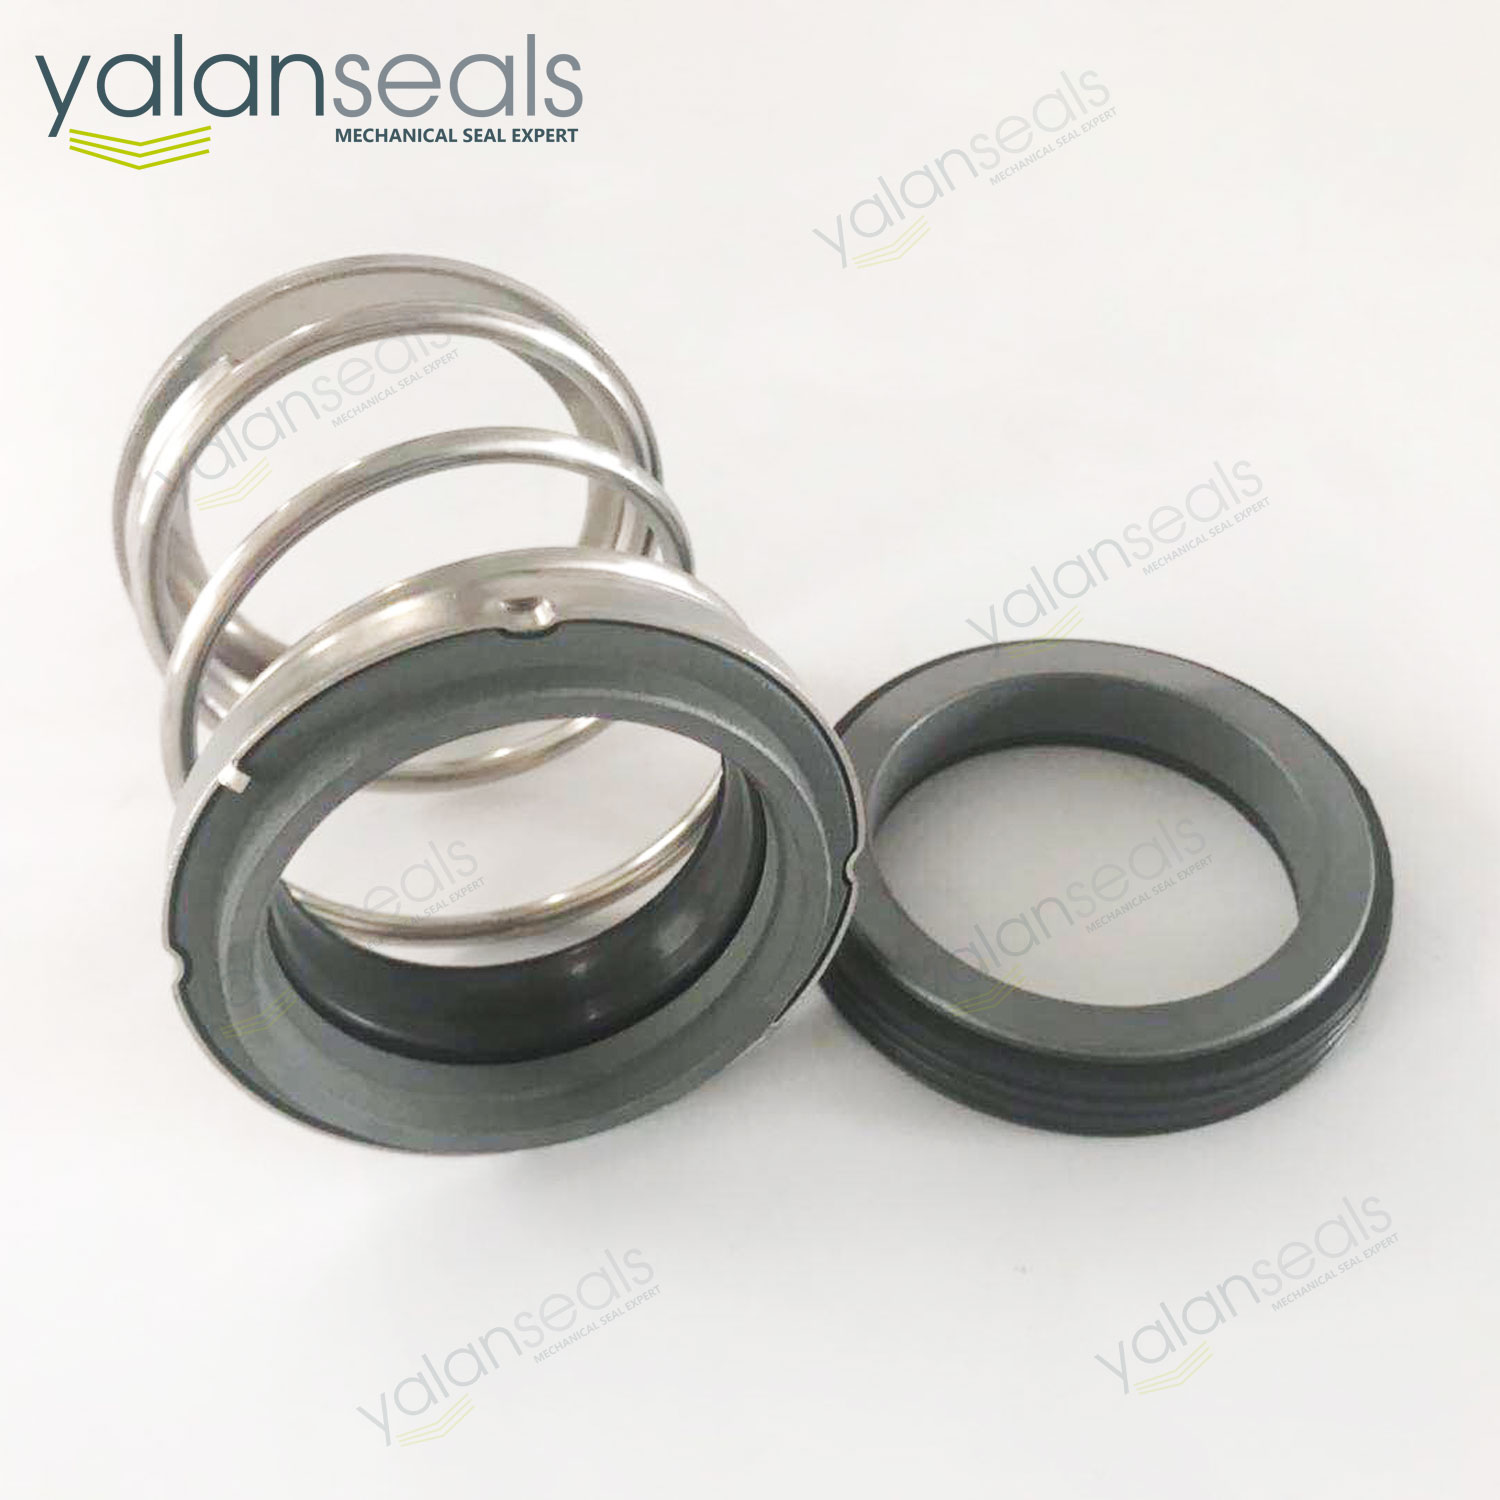 EA560 Elastomer Bellow Mechanical Seal